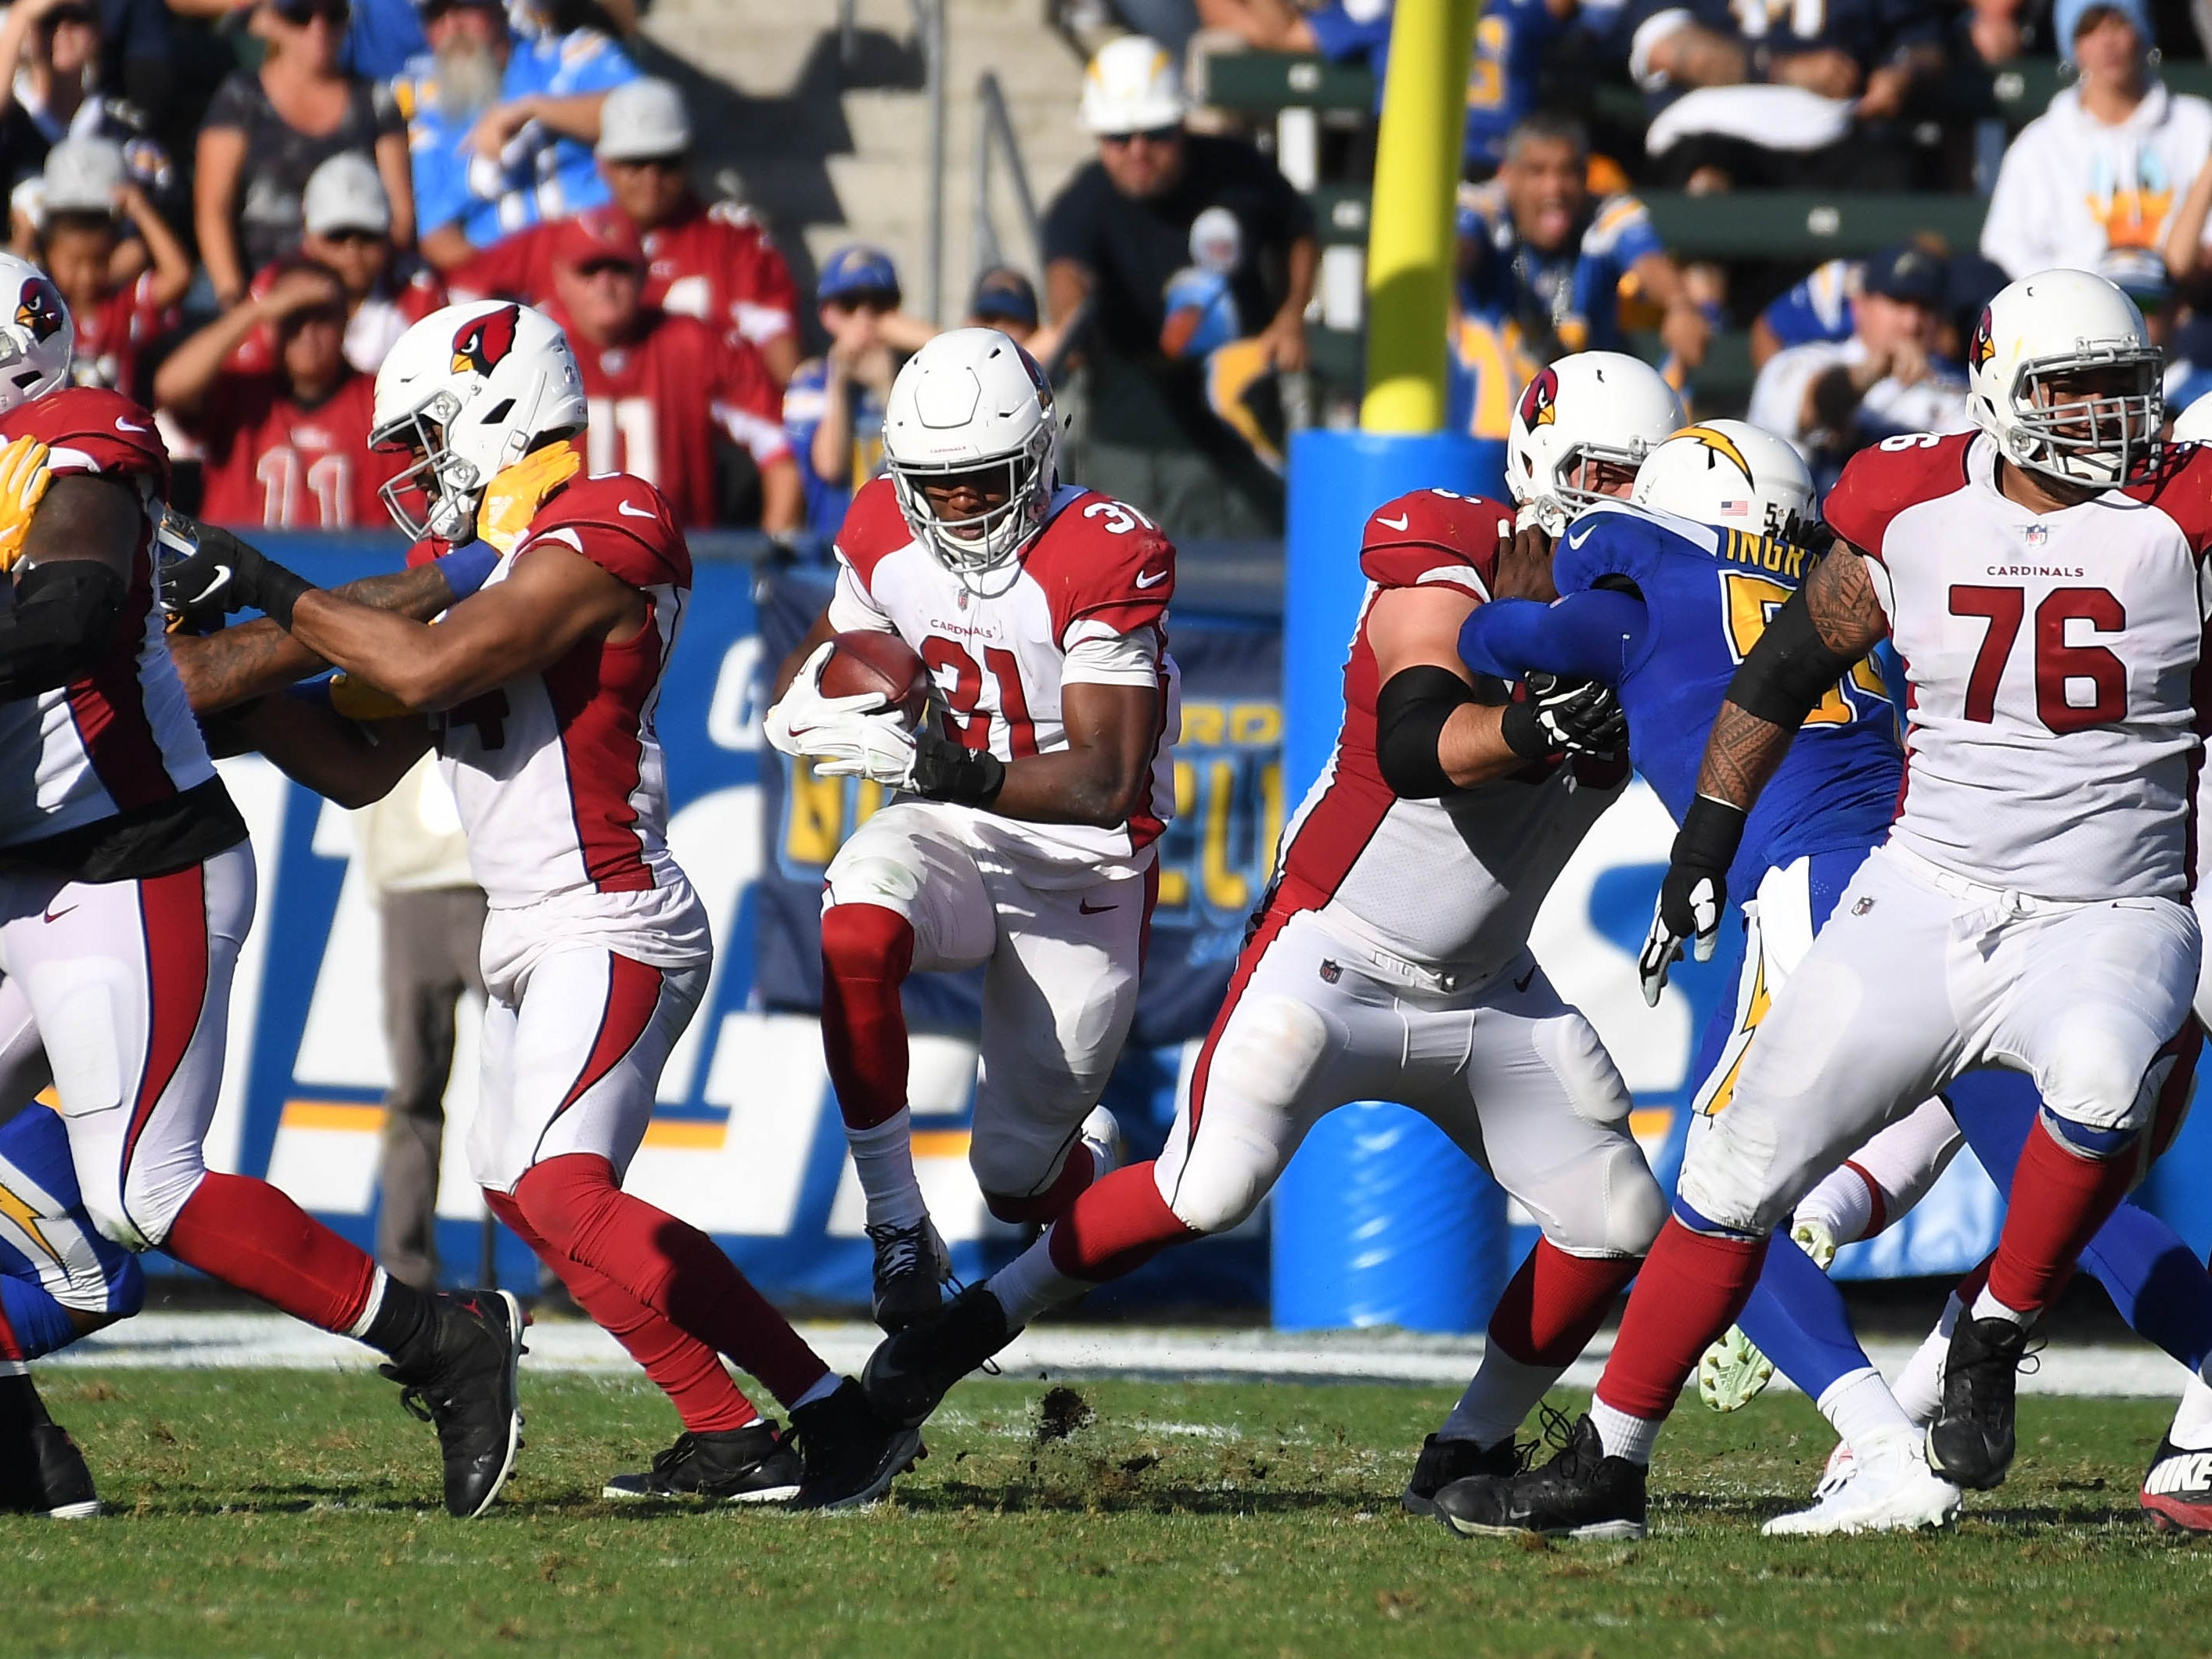 Nov 25, 2018; Carson, CA, USA;  Arizona Cardinals running back David Johnson (31) runs the ball against the Los Angeles Chargers in the first half at the StubHub Center. Mandatory Credit: Richard Mackson-USA TODAY Sports